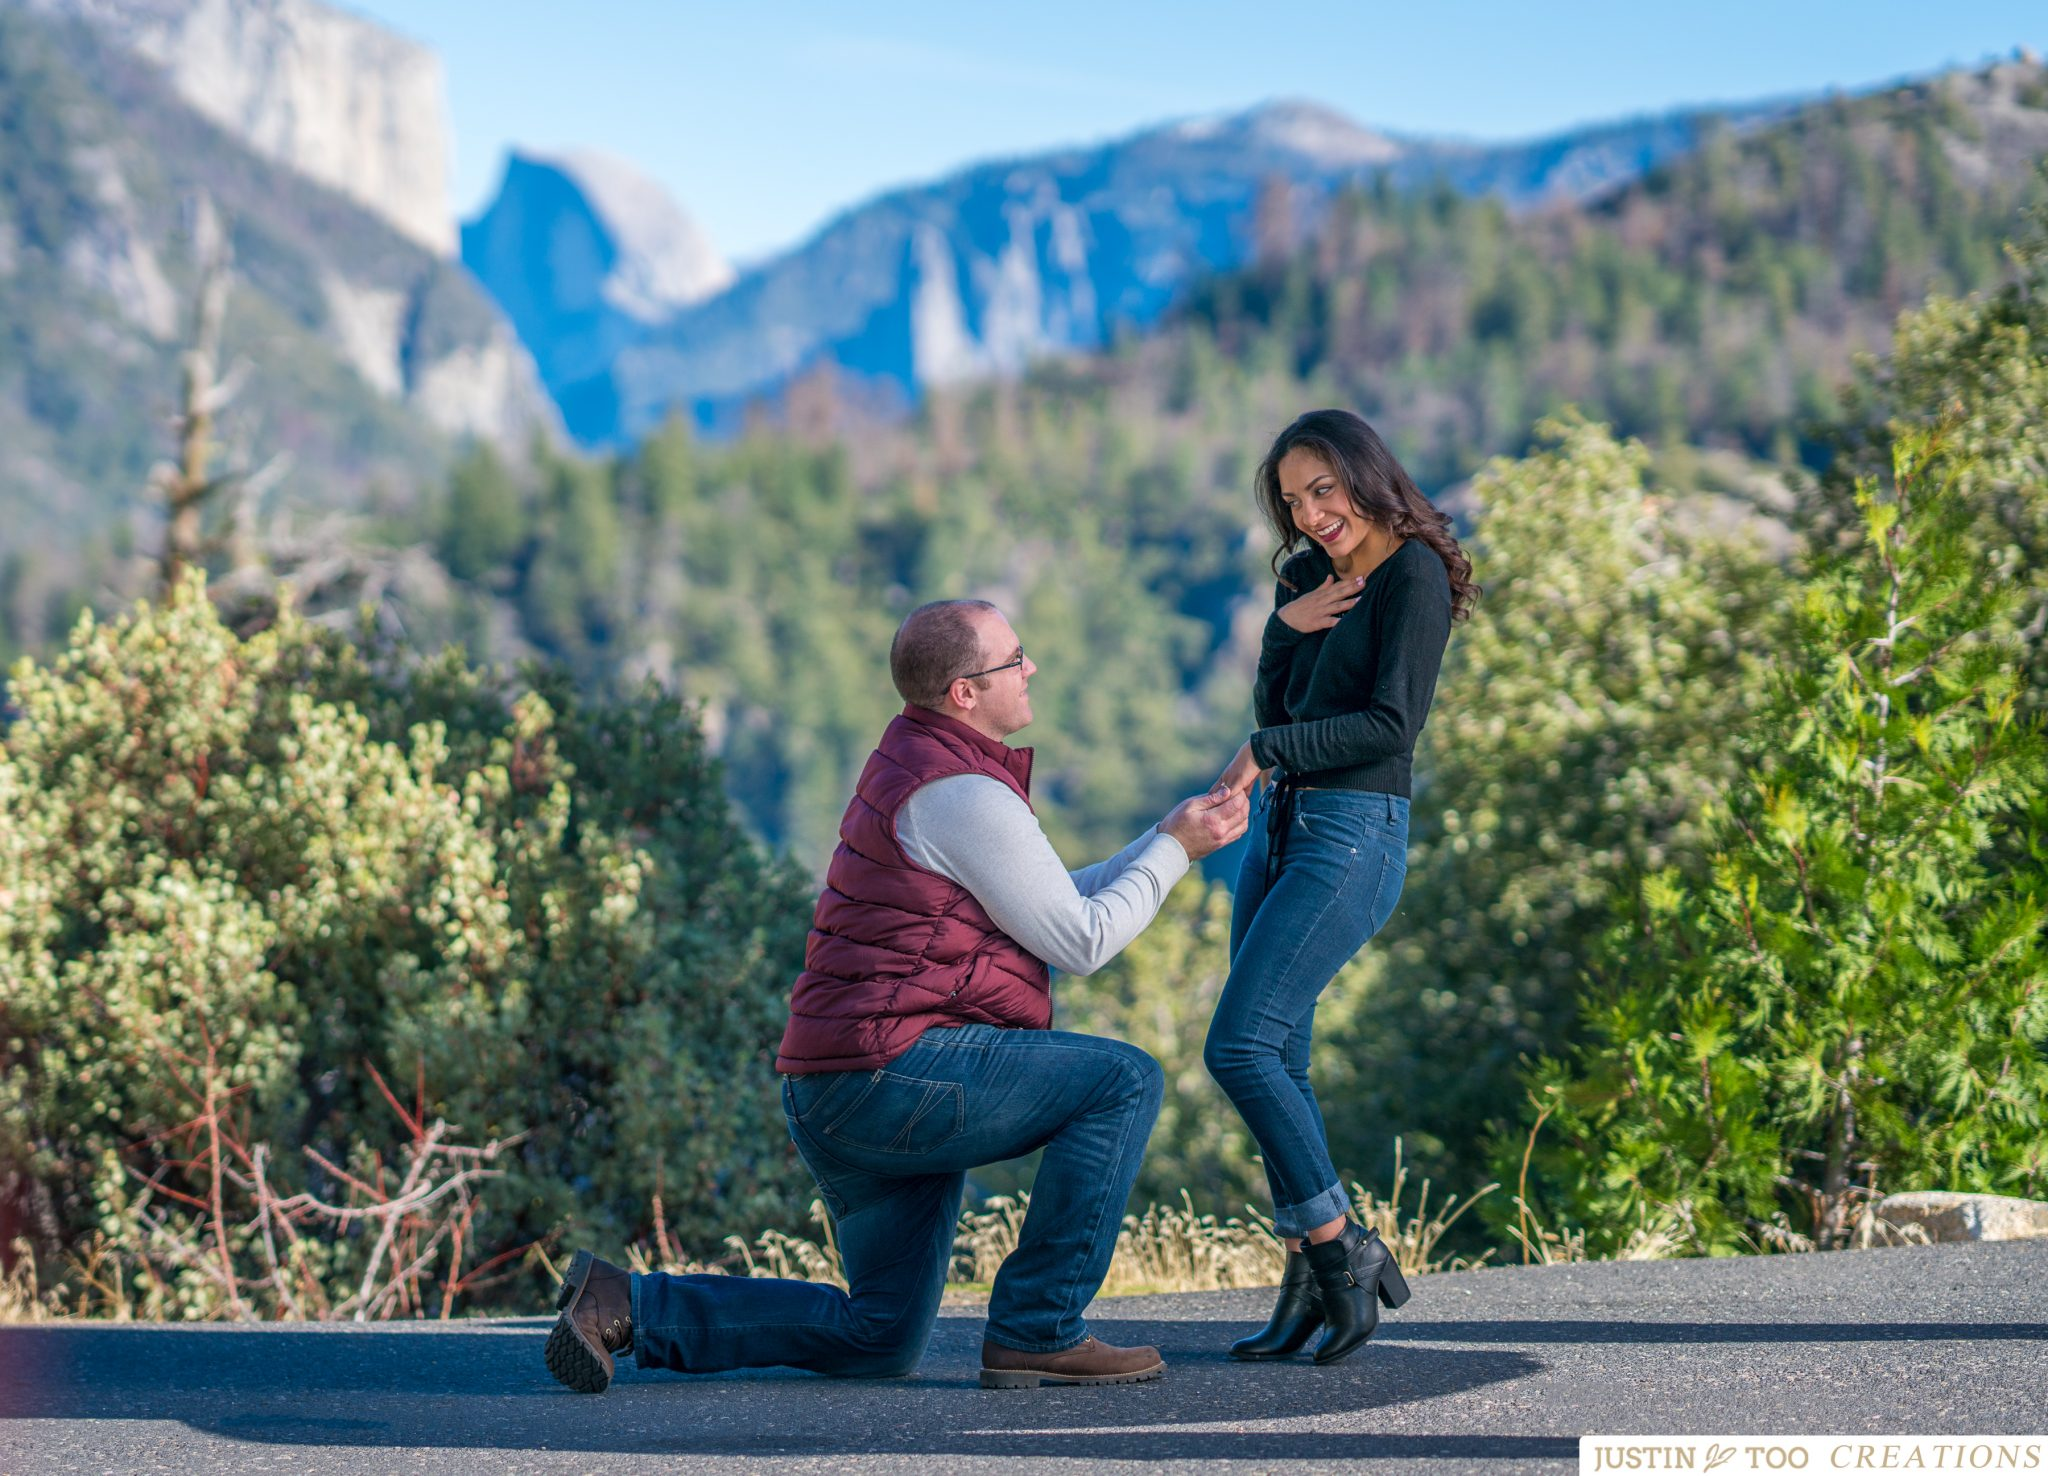 justin too creations, engagement photography, proposal photography, engagement photoshoot, proposal photoshoot